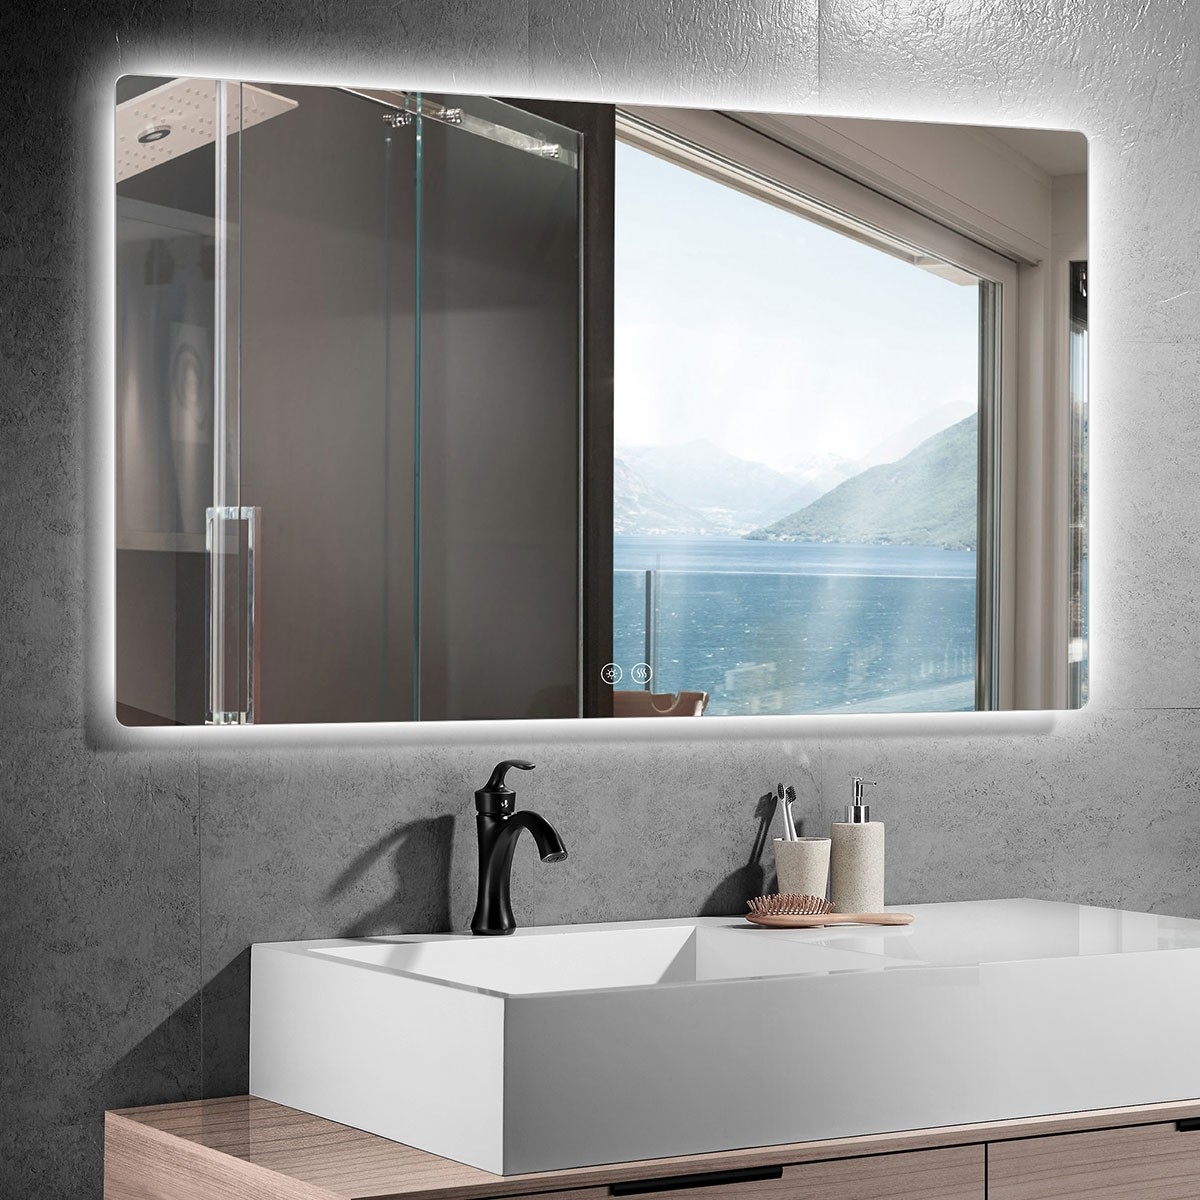 DECORAPORT 55 x 36 Po Miroir de Salle de Bain LED avec Bouton Tactile, Anti-Buée, Luminosité Réglable, Bluetooth, Montage Vertical & Horizontal (D521-5536A)